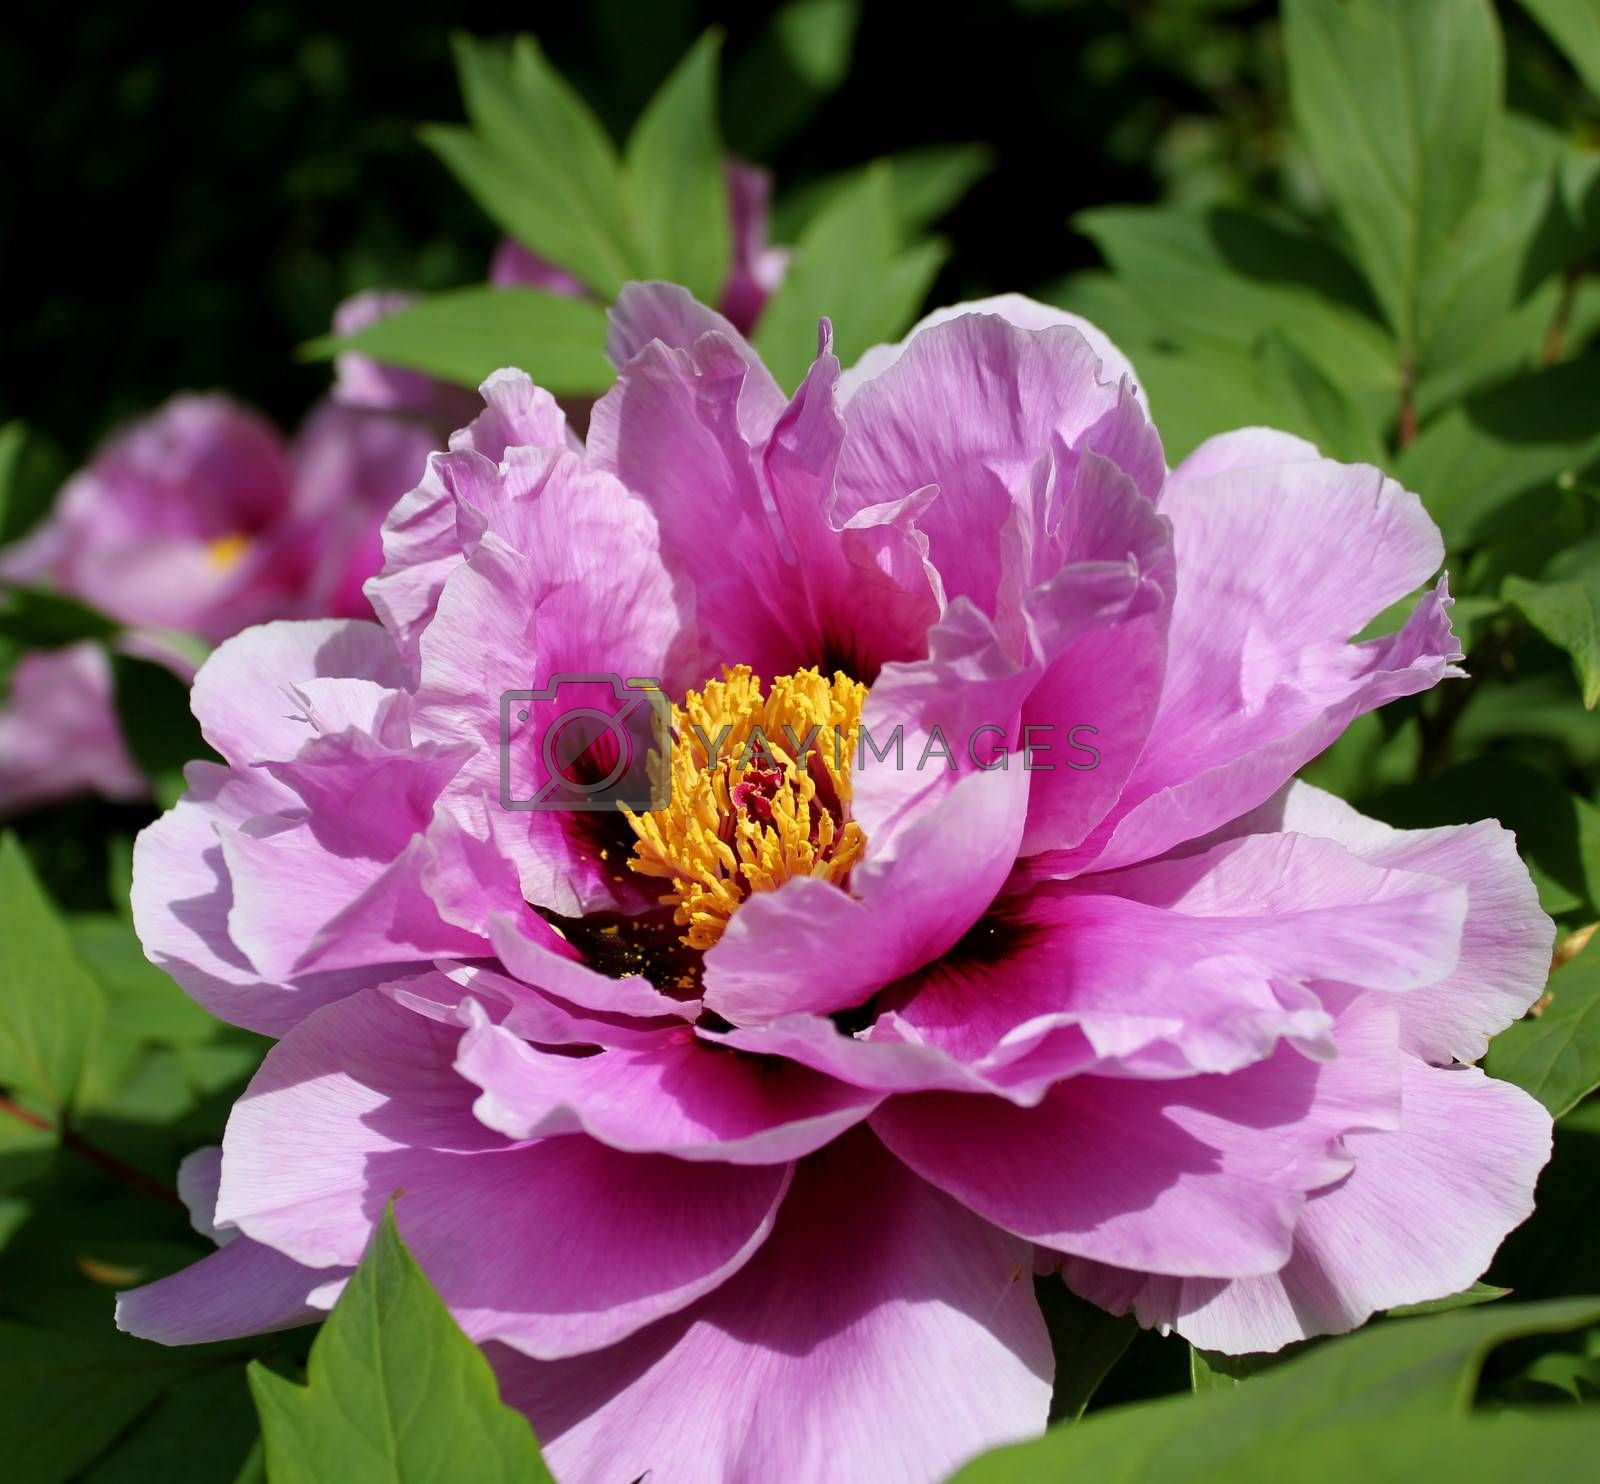 A closeup of a fully open pink peony, showcasing its delicate yellow centre.